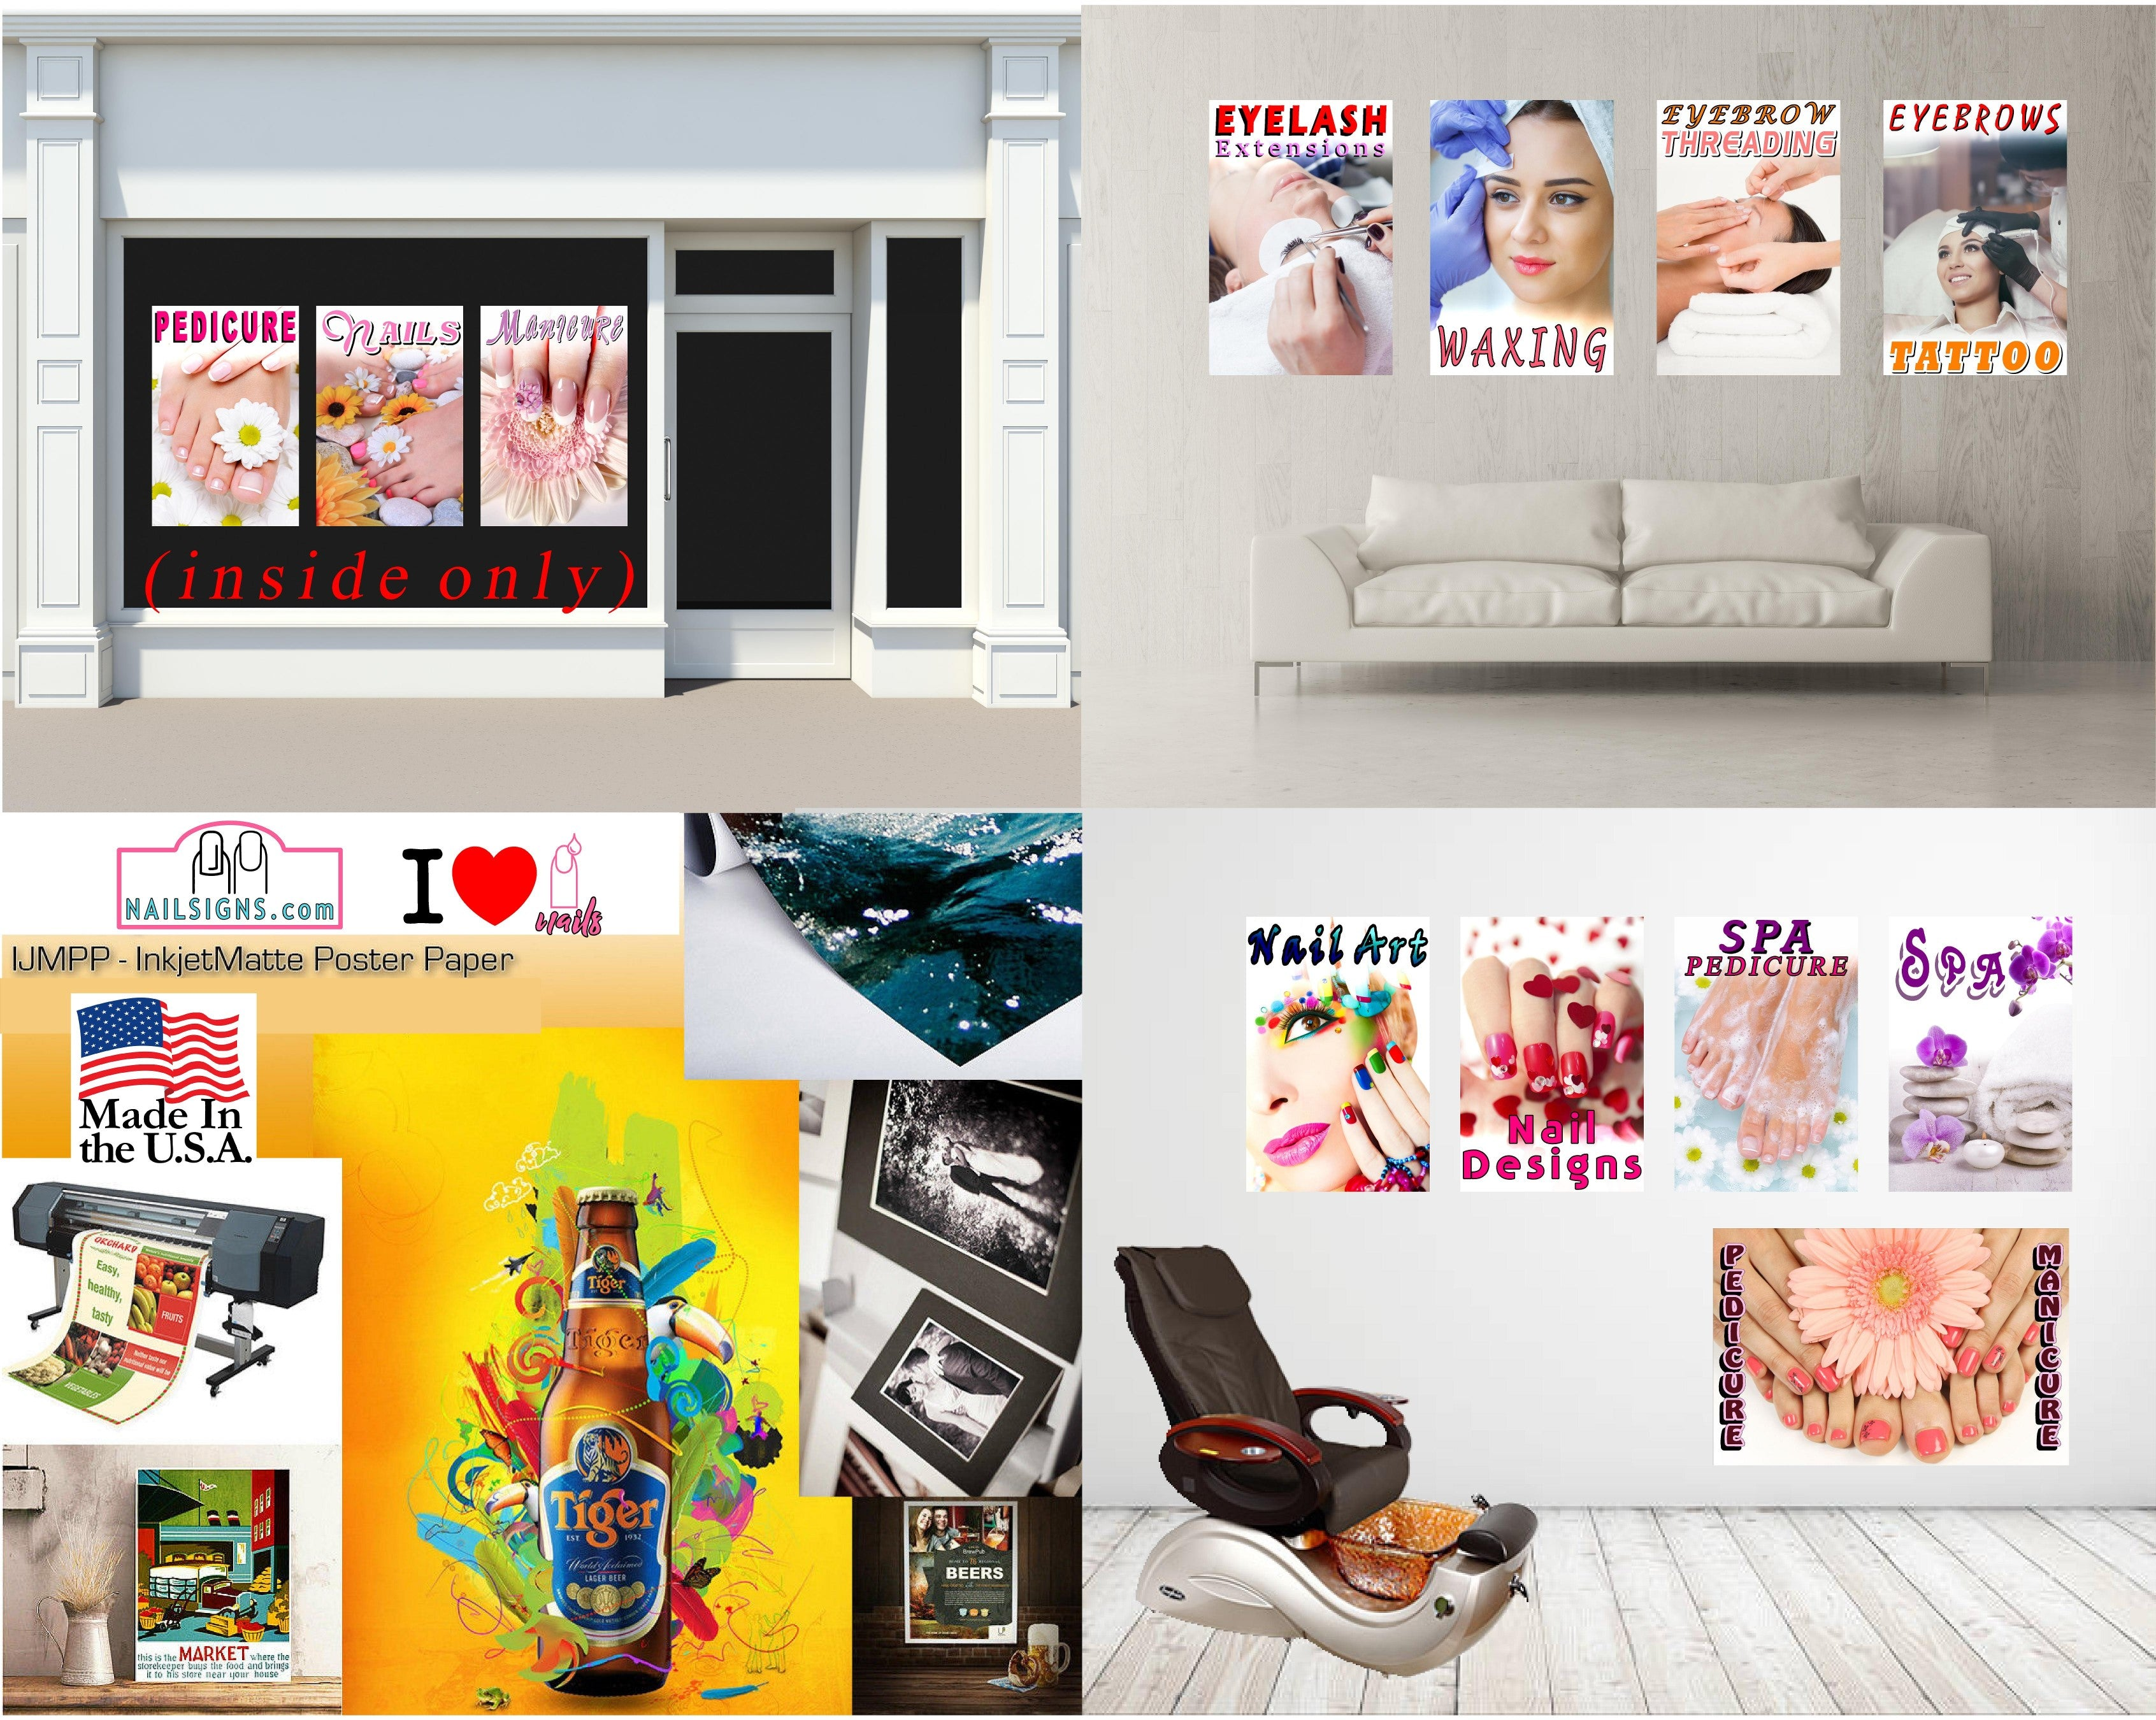 Nails 08 Photo-Realistic Paper Poster Premium Matte Interior Inside Sign Advertising Marketing Wall Window Non-Laminated Horizontal